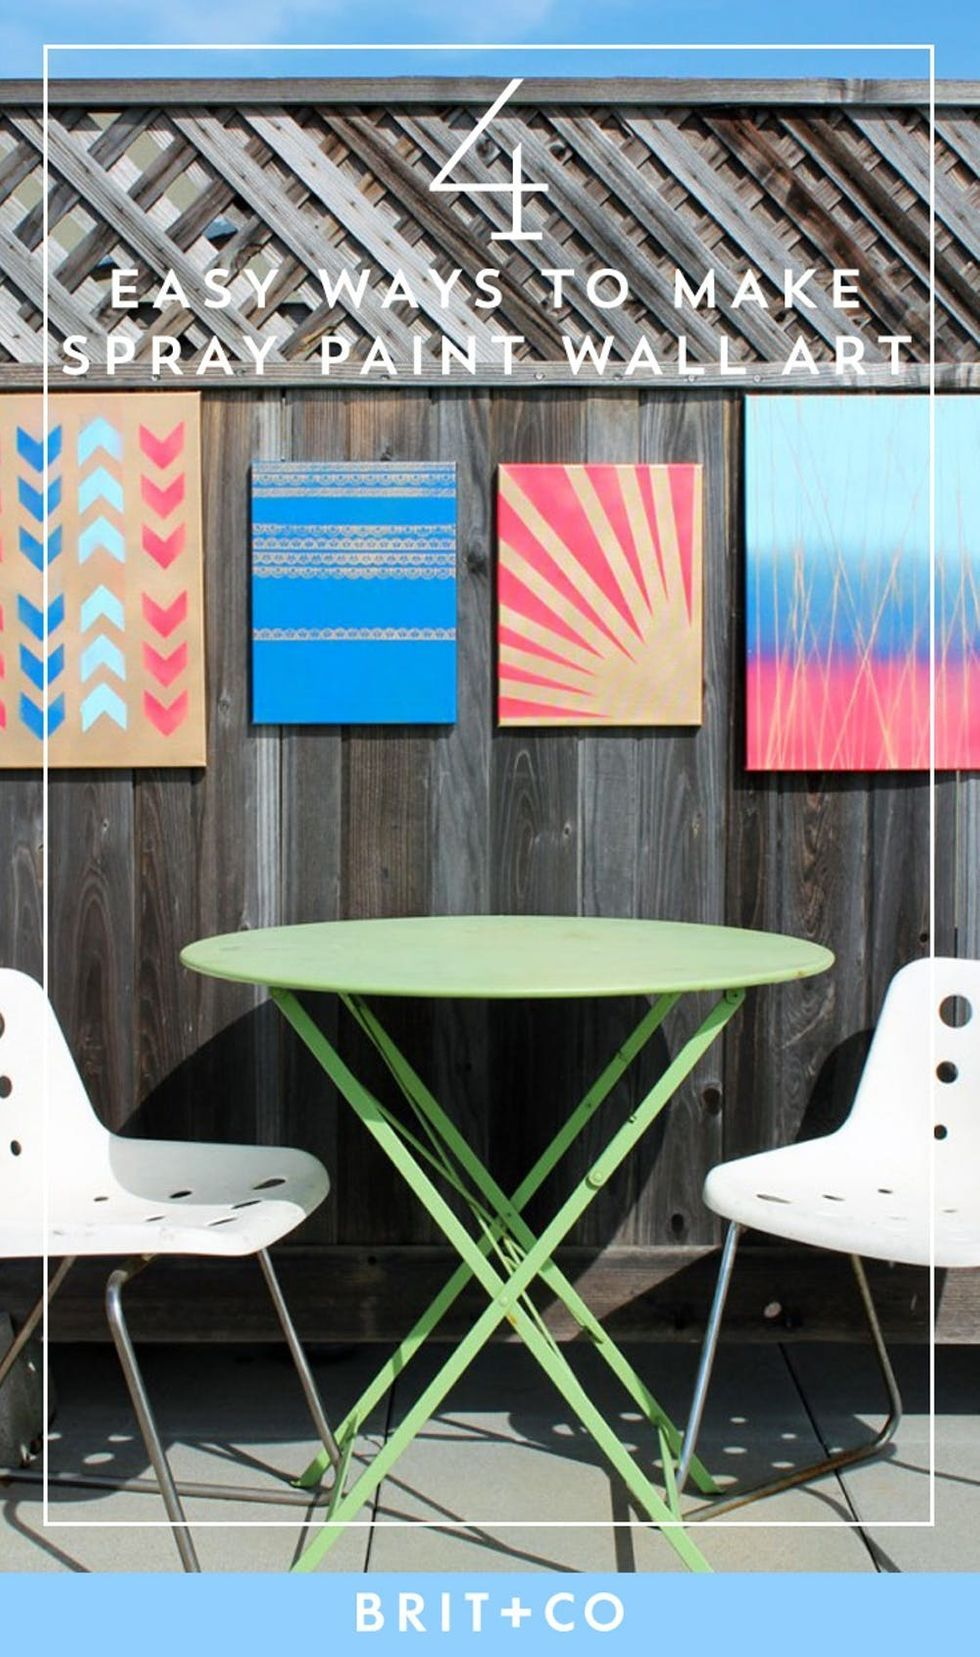 Home Is Where the Art Is: 4 Simple Ways to Make Spray Paint Wall Art #spraypainting